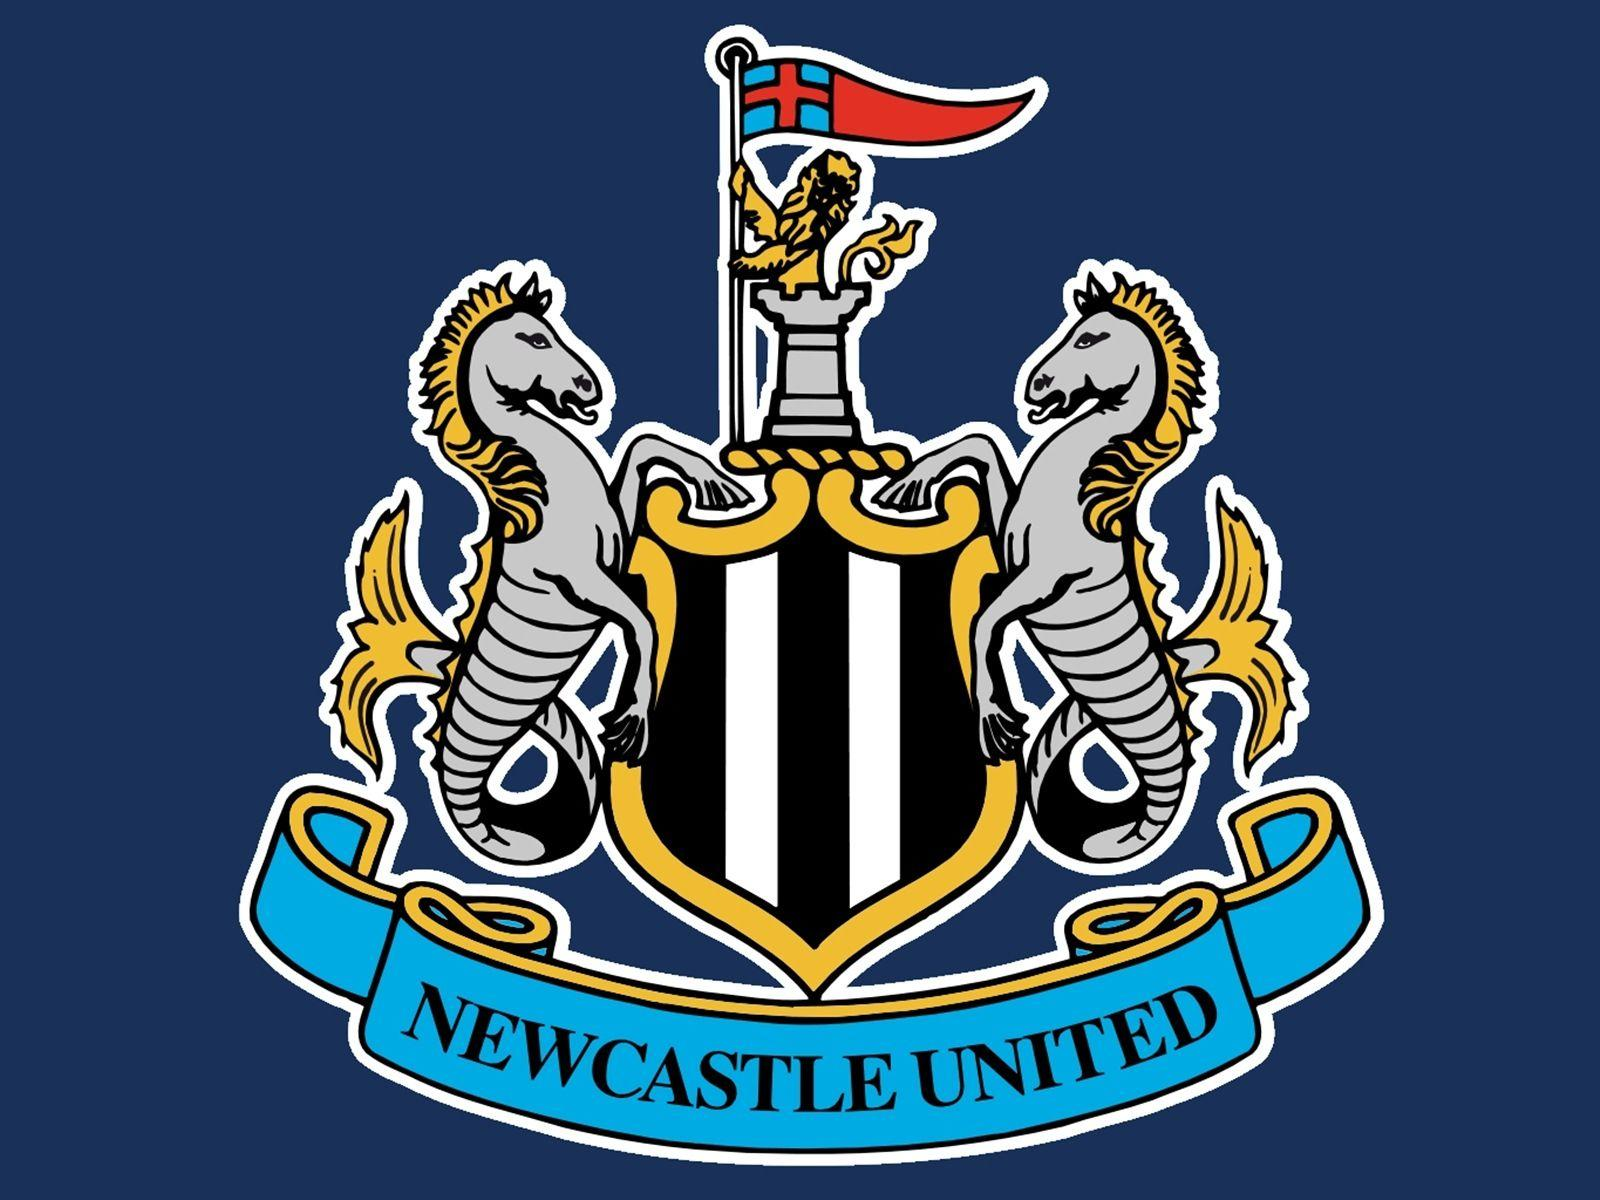 NUFC Wallpapers - Wallpaper Cave